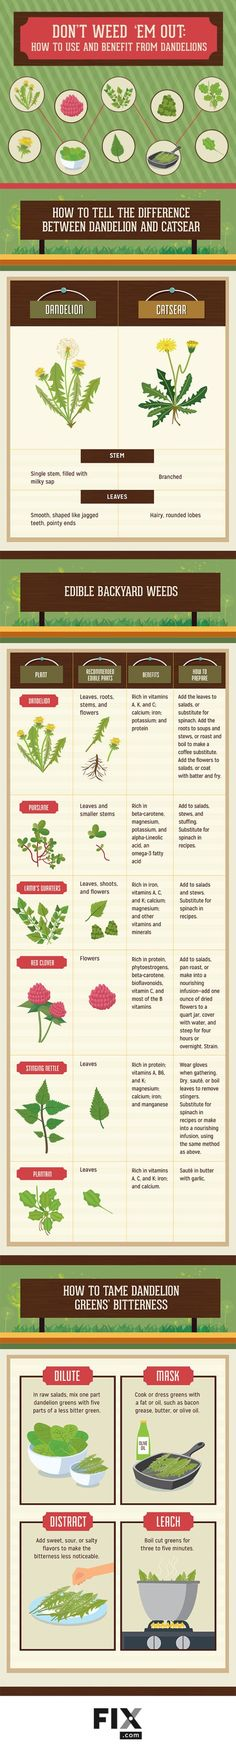 """I've made quite a few dandelion recipes. This versatile """"weed"""" is delicious and nutritious from root to flower! Check out this awesome dandelion infographic, too."""